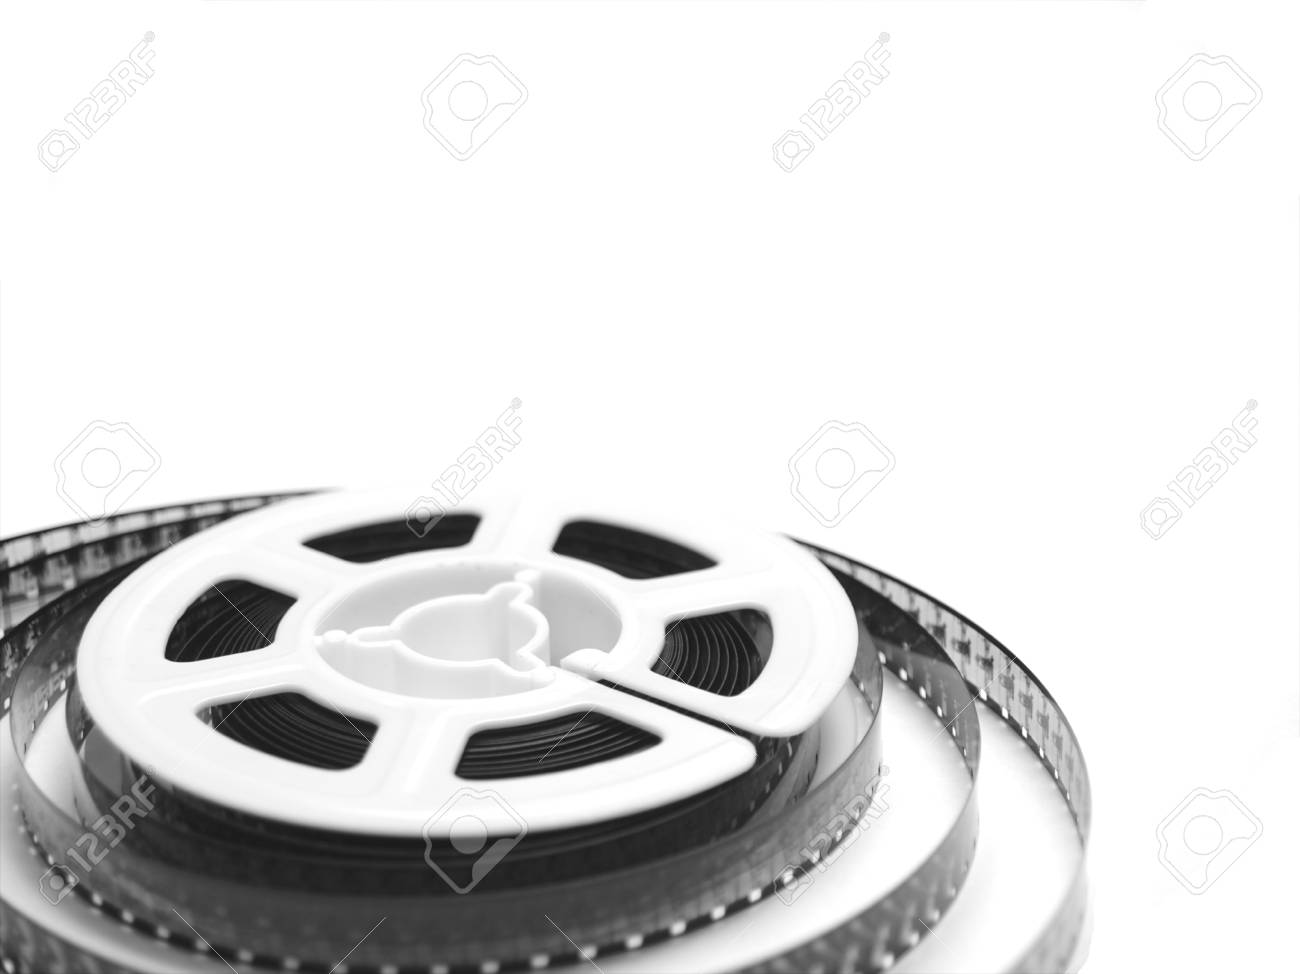 8mm film reels stock photo picture and royalty free image image 8mm film reels stock photo 94478188 thecheapjerseys Choice Image